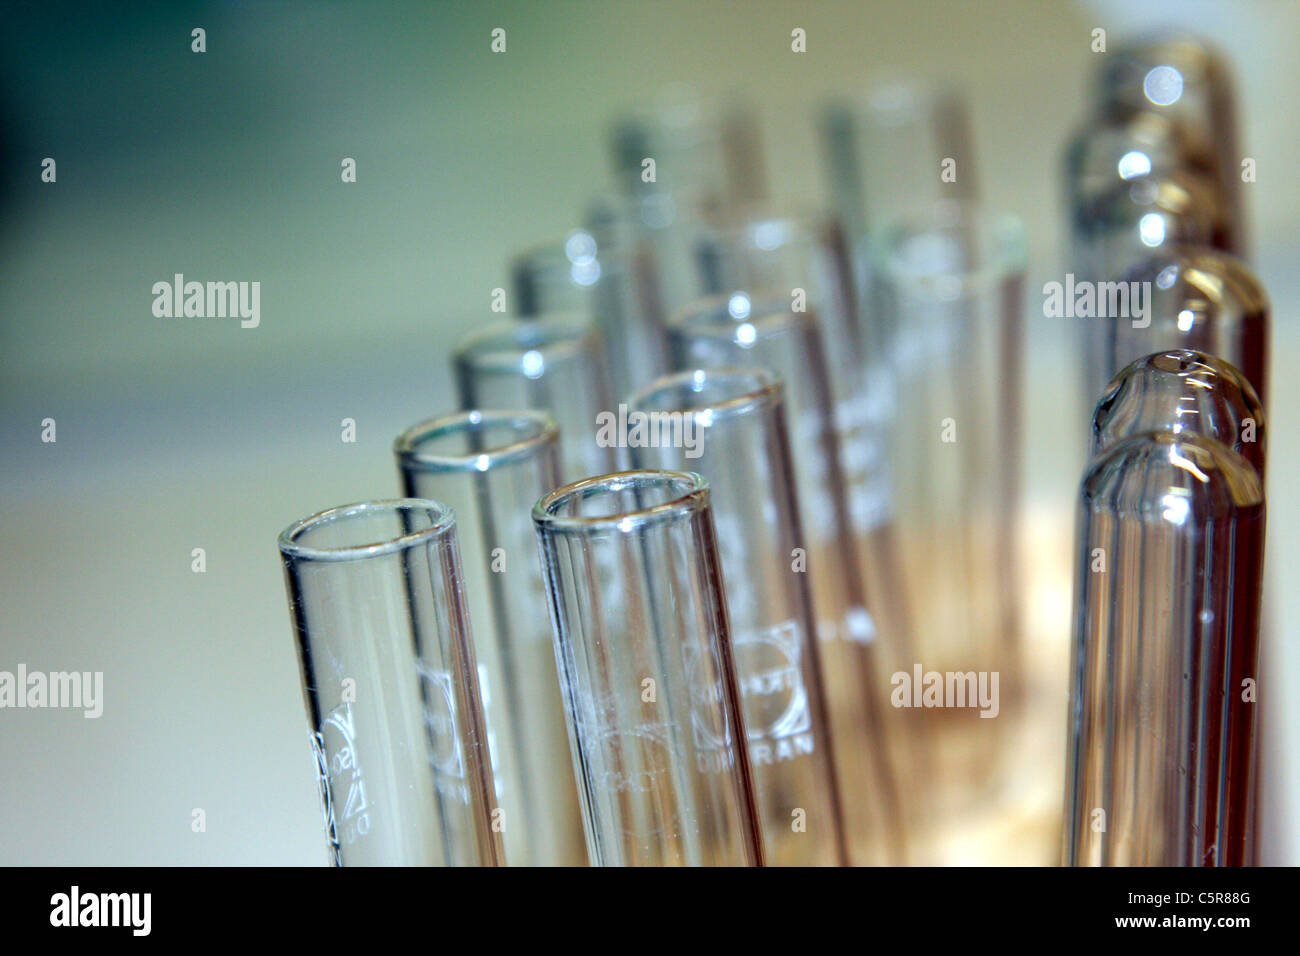 Close-up of Test Tubes in a Chemistry Lab - Stock Image